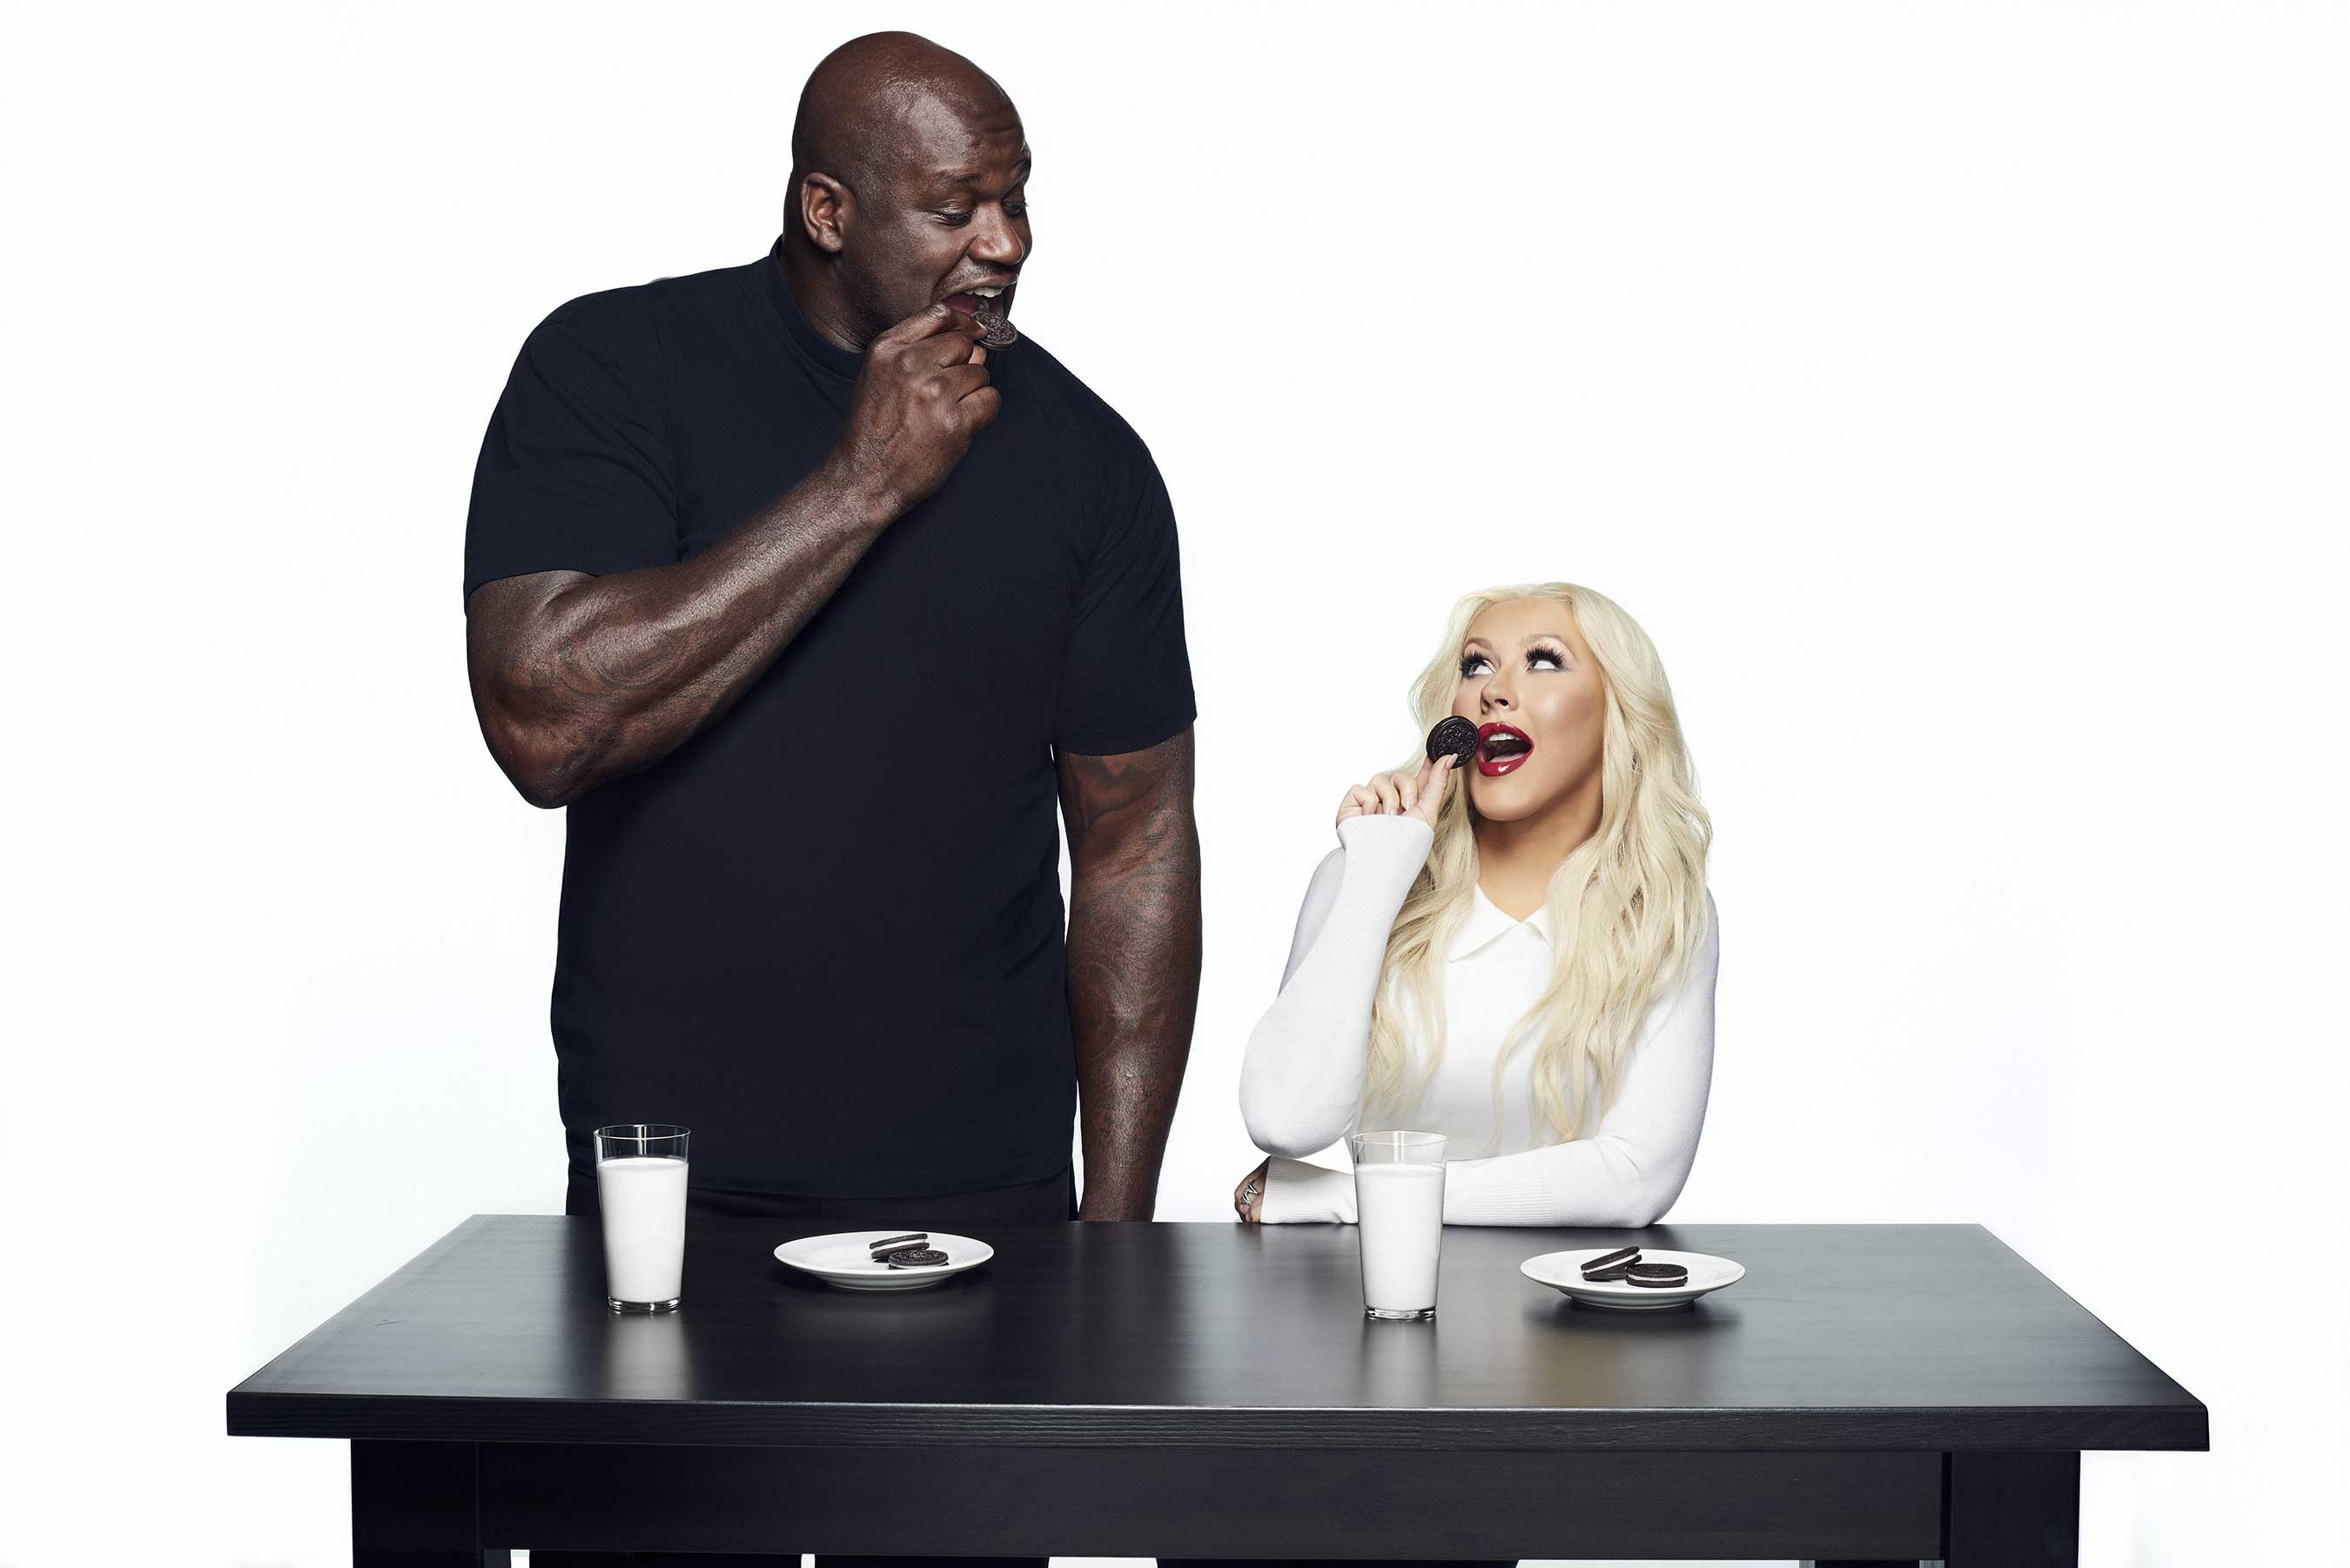 Oreo Launches Star-studded Social Media Campaign Featuring Aguilera, Shaq and Neymar